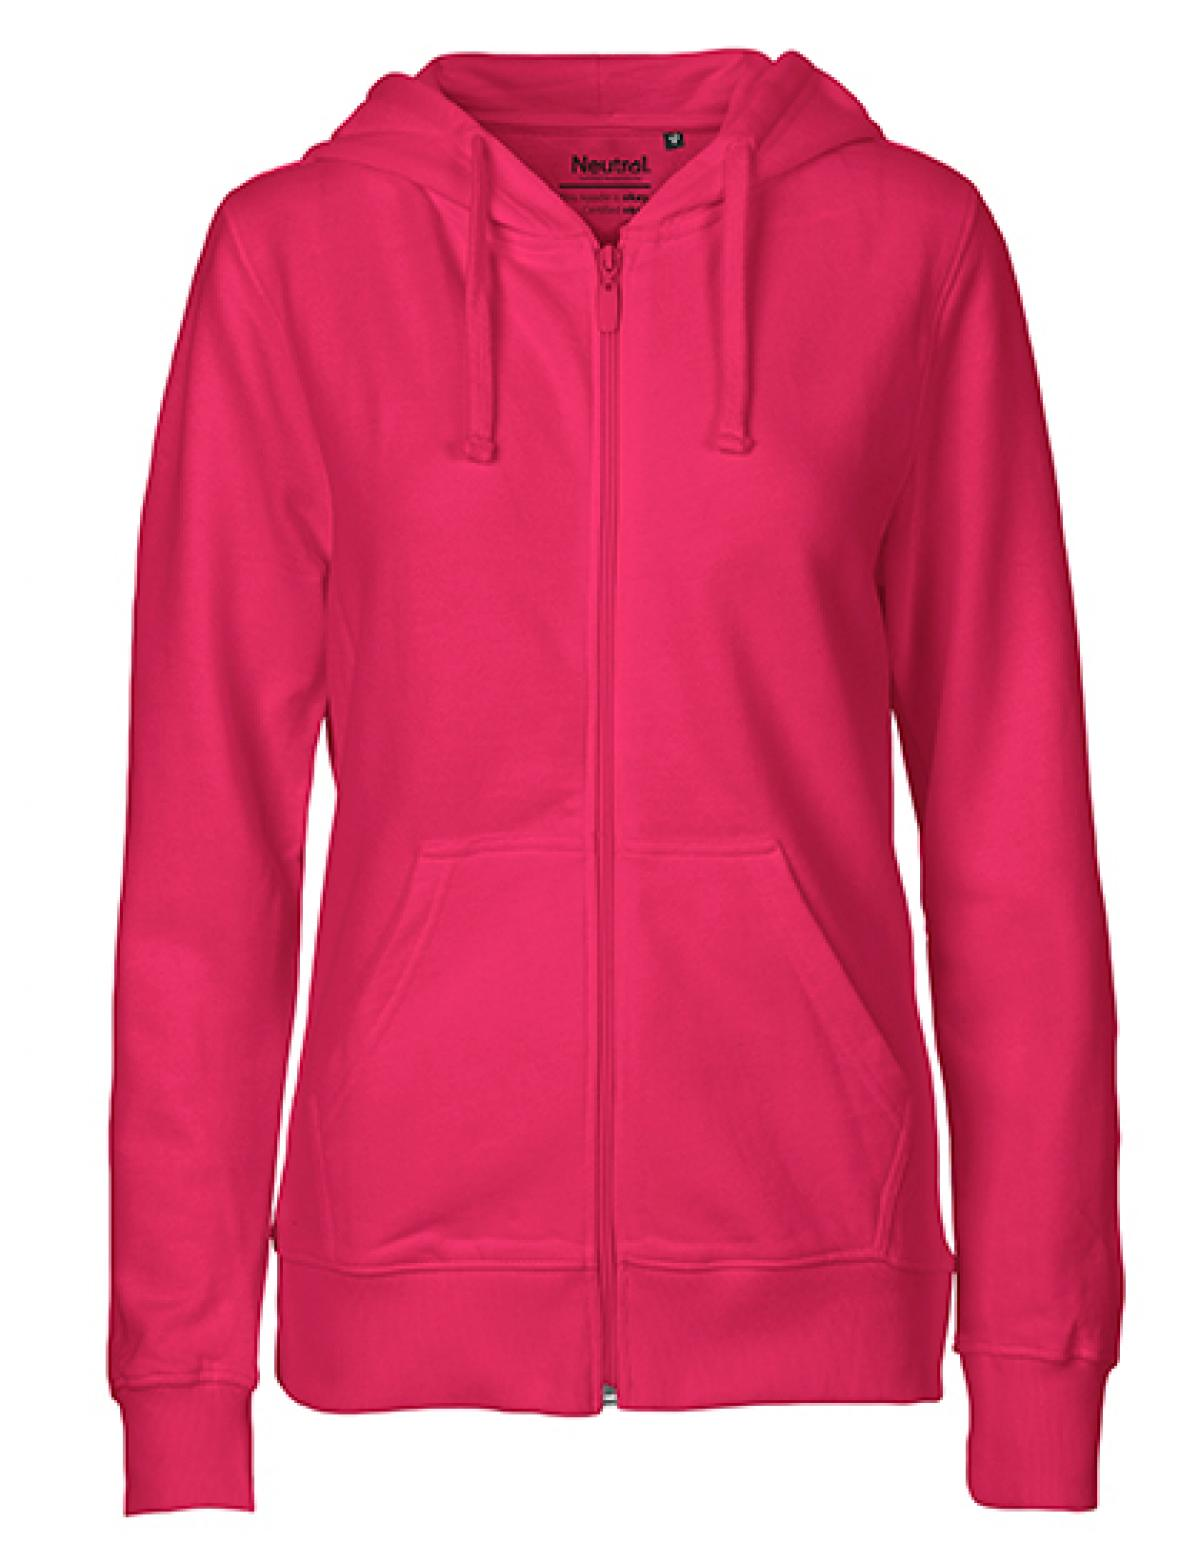 Shop for Women's Hoodies at REI - FREE SHIPPING With $50 minimum purchase. Top quality, great selection and expert advice you can trust. % Satisfaction Guarantee.